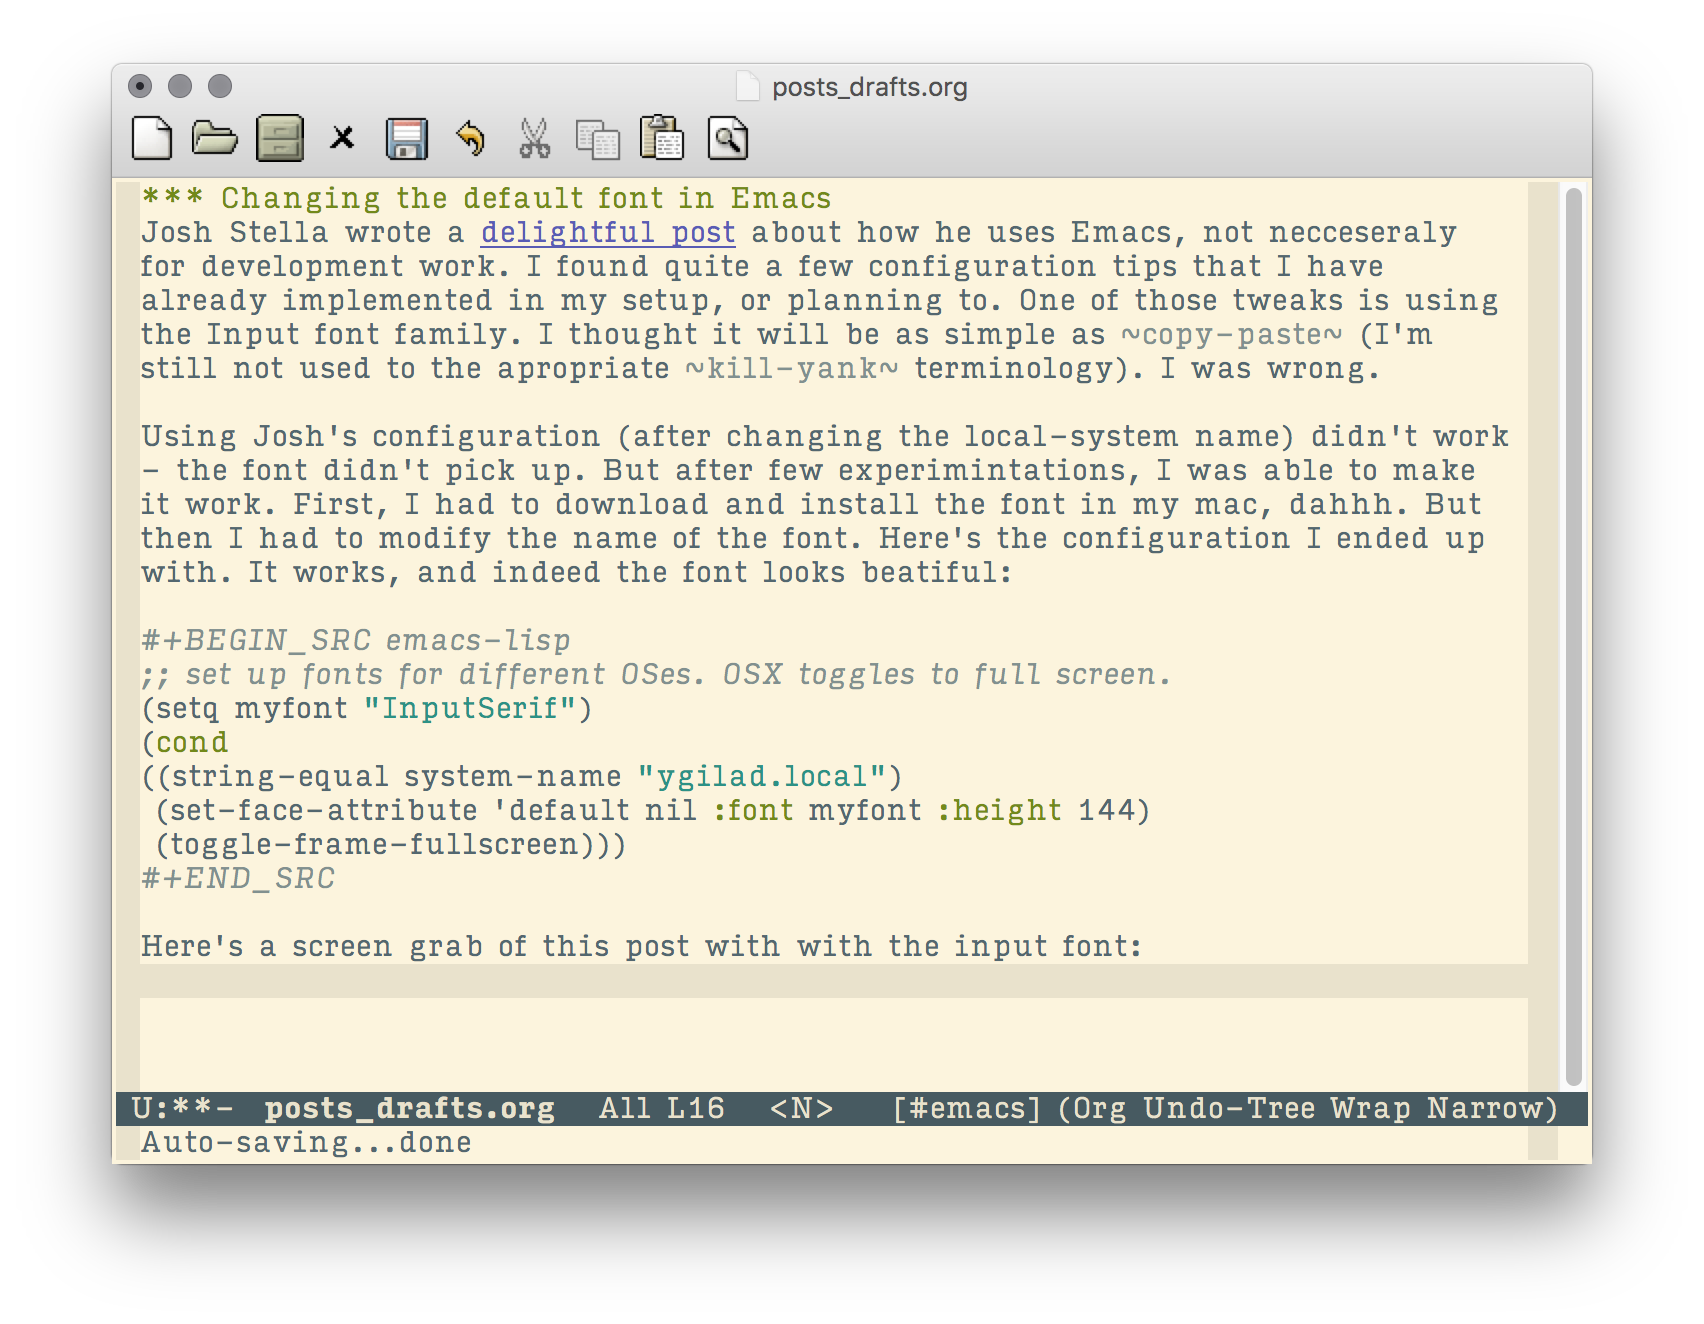 emacs_with_input_font.png